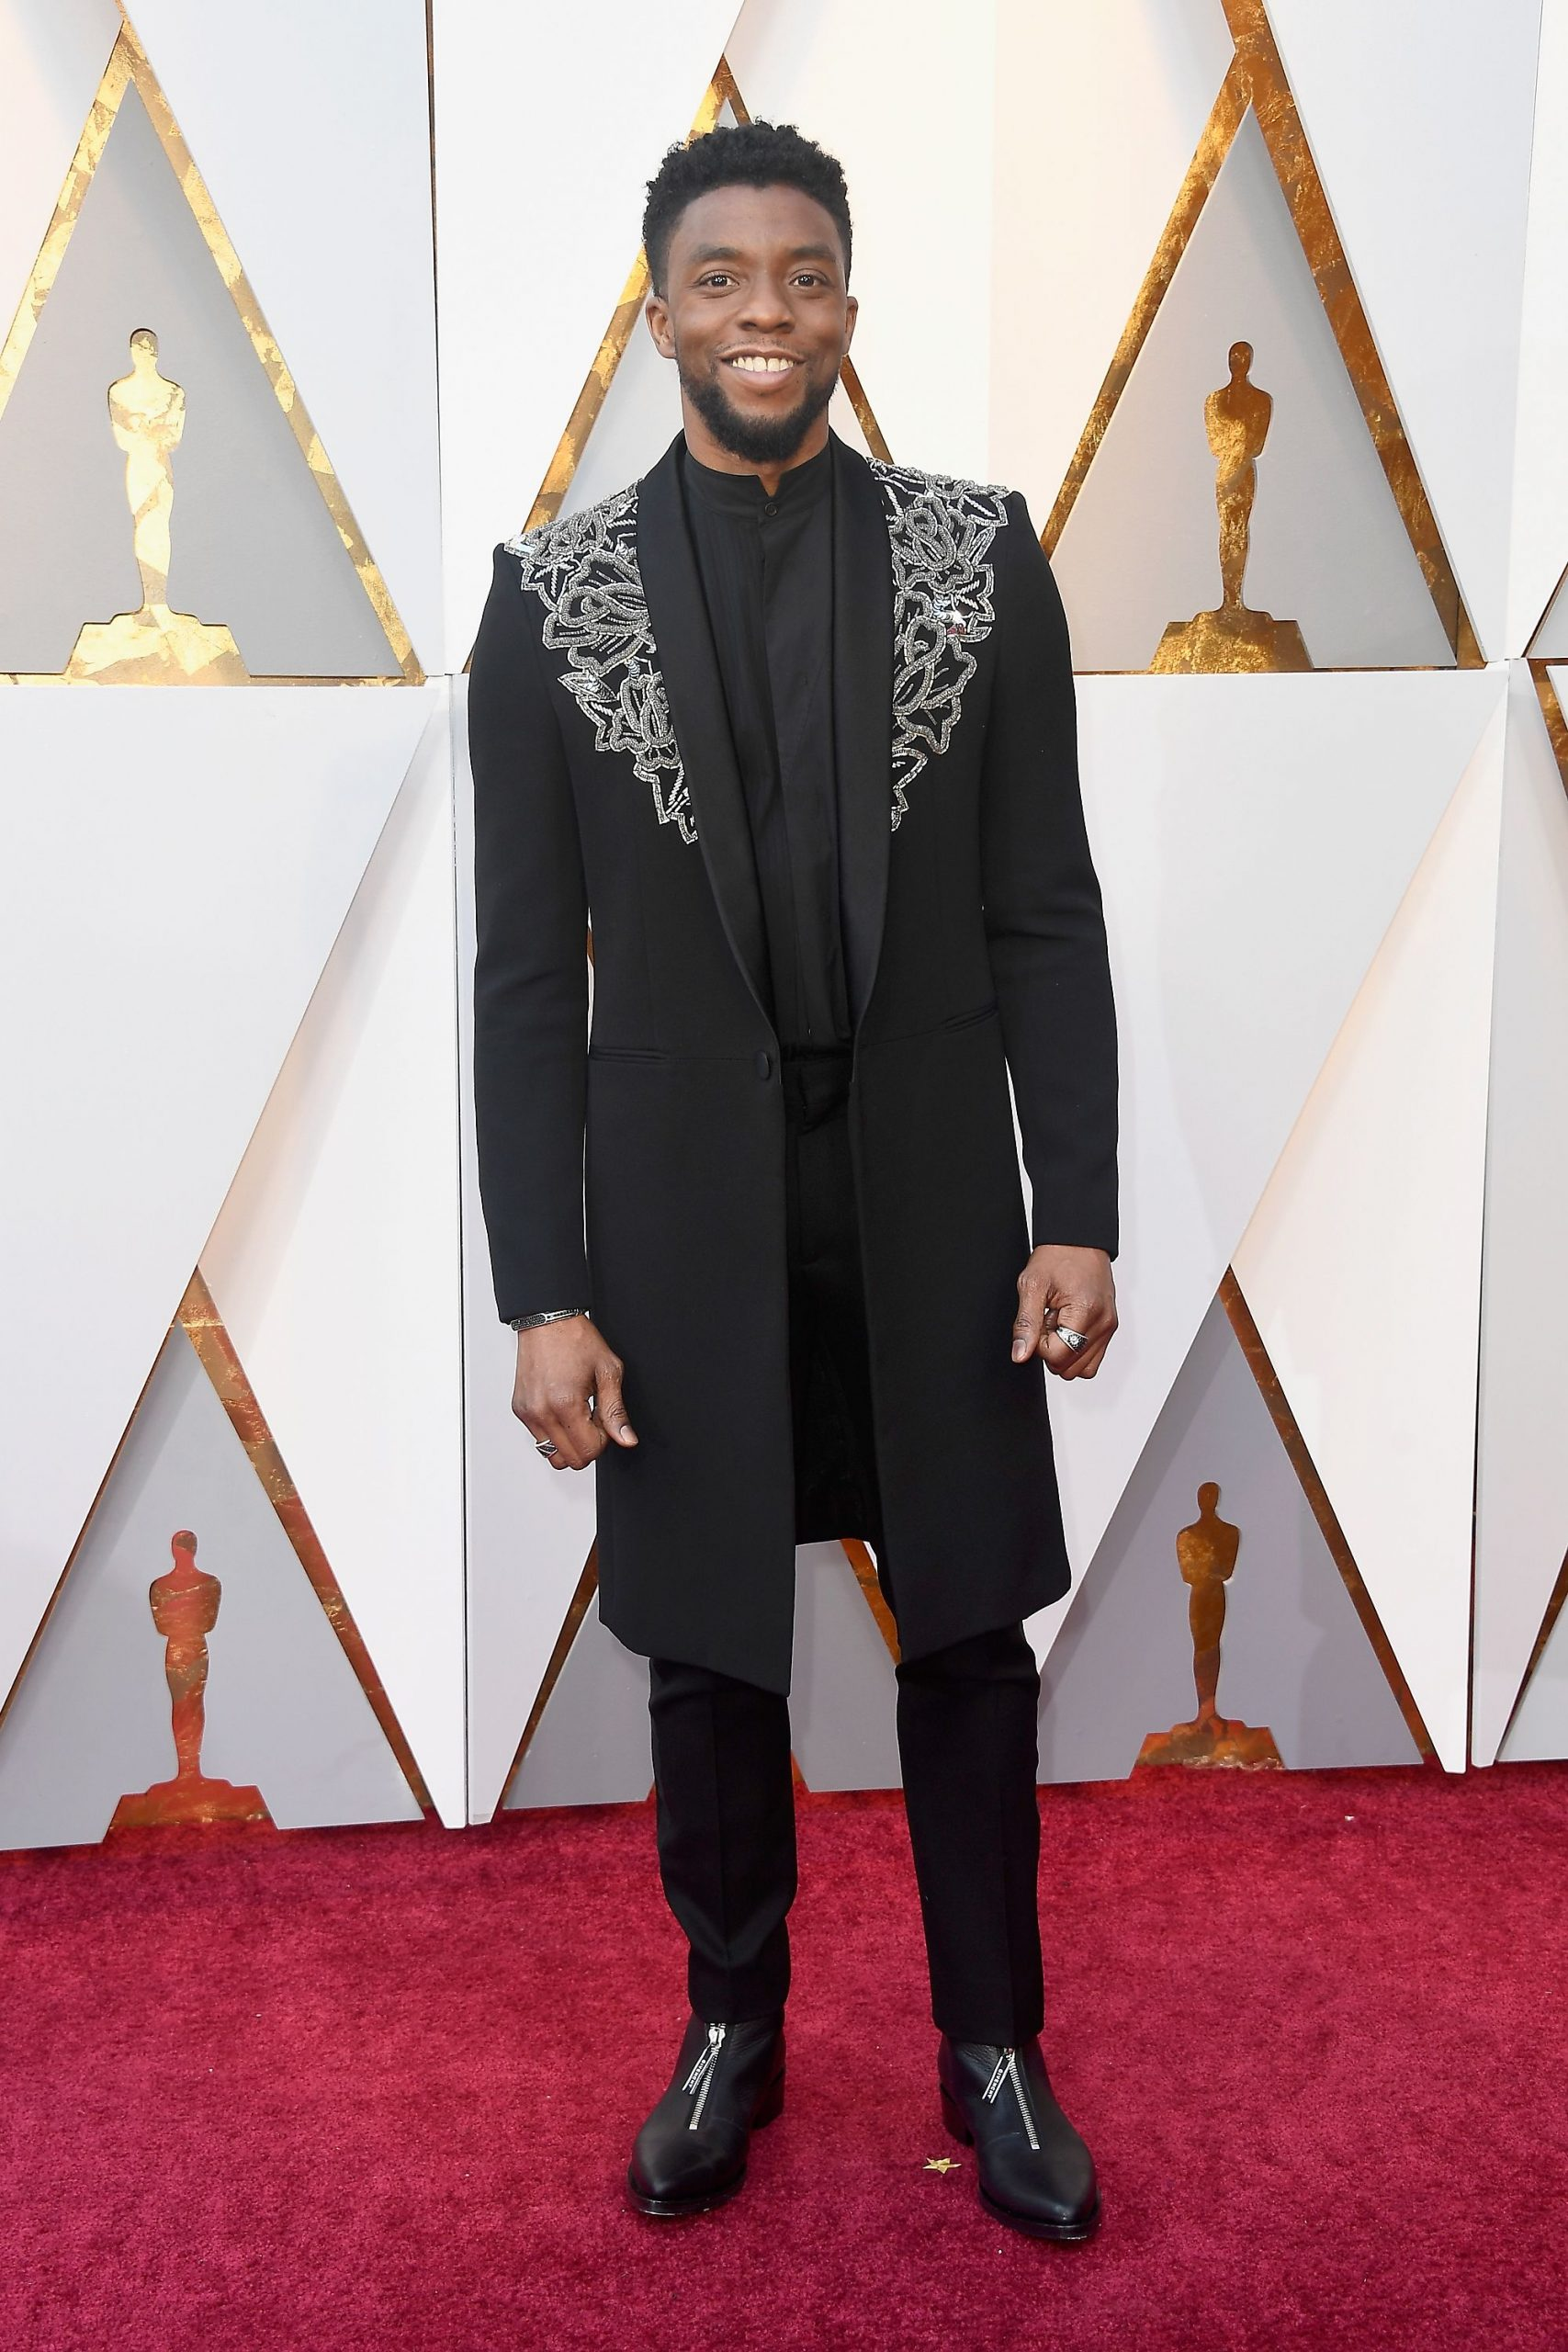 celebrities-react-to-black-panther-actor-chadwick-boseman-death